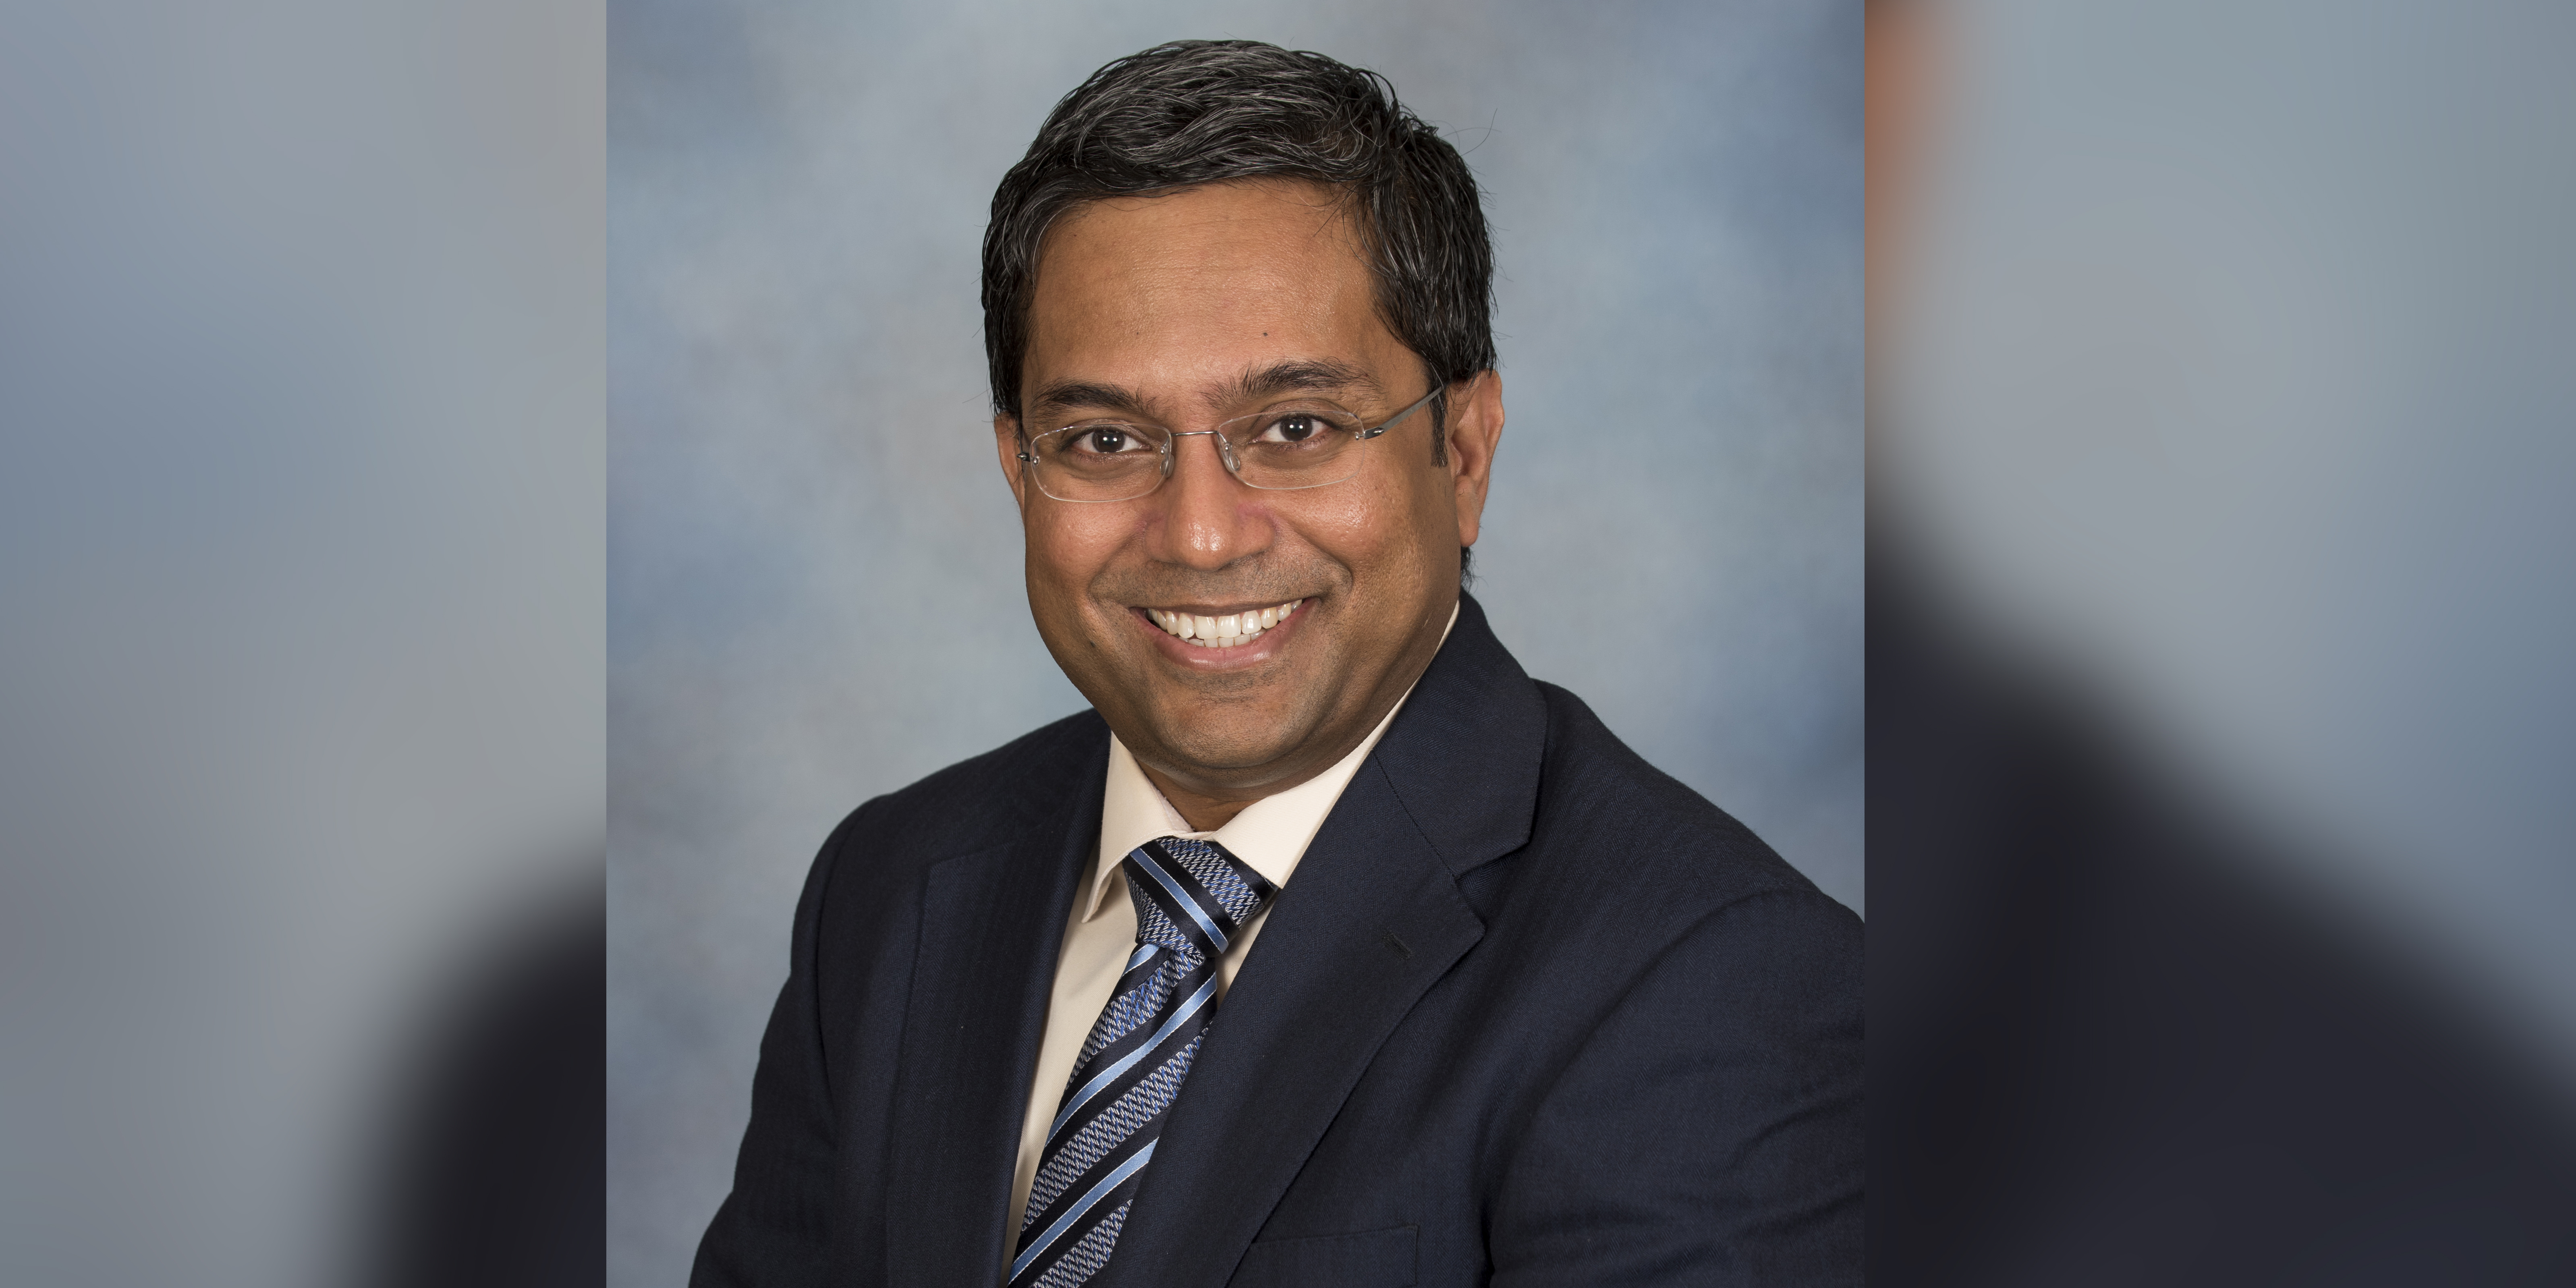 Wolters Kluwer GRC Appoints Raja Sengupta as General Manager of ELM Solutions